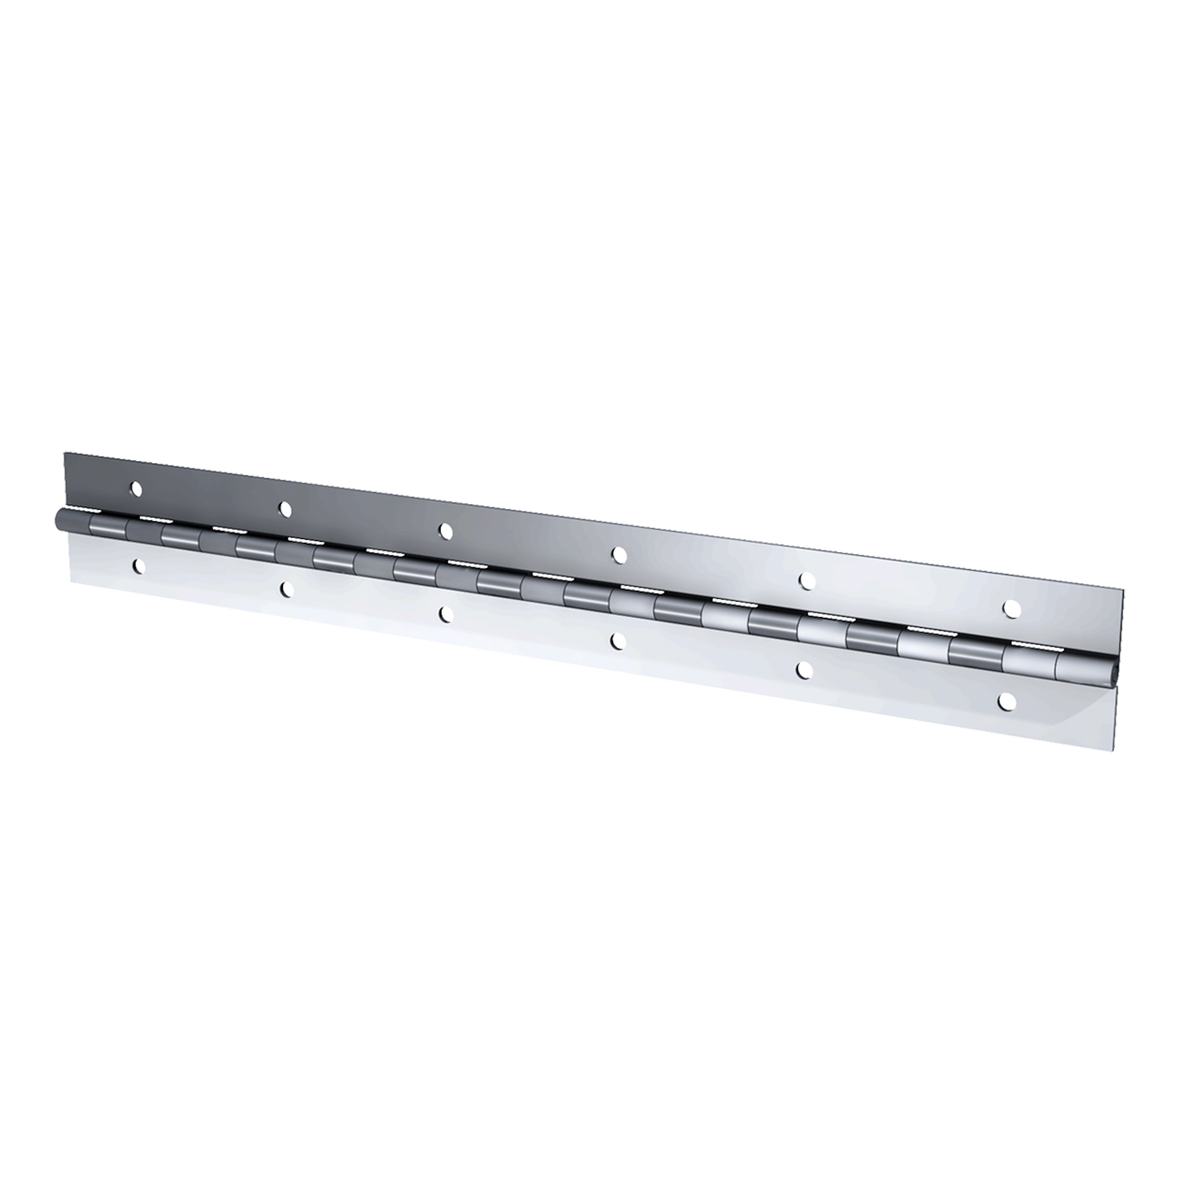 "Aluminum Continuous Hinge - 0.06"" x 1.50"" x 72"" with Mounting Holes"